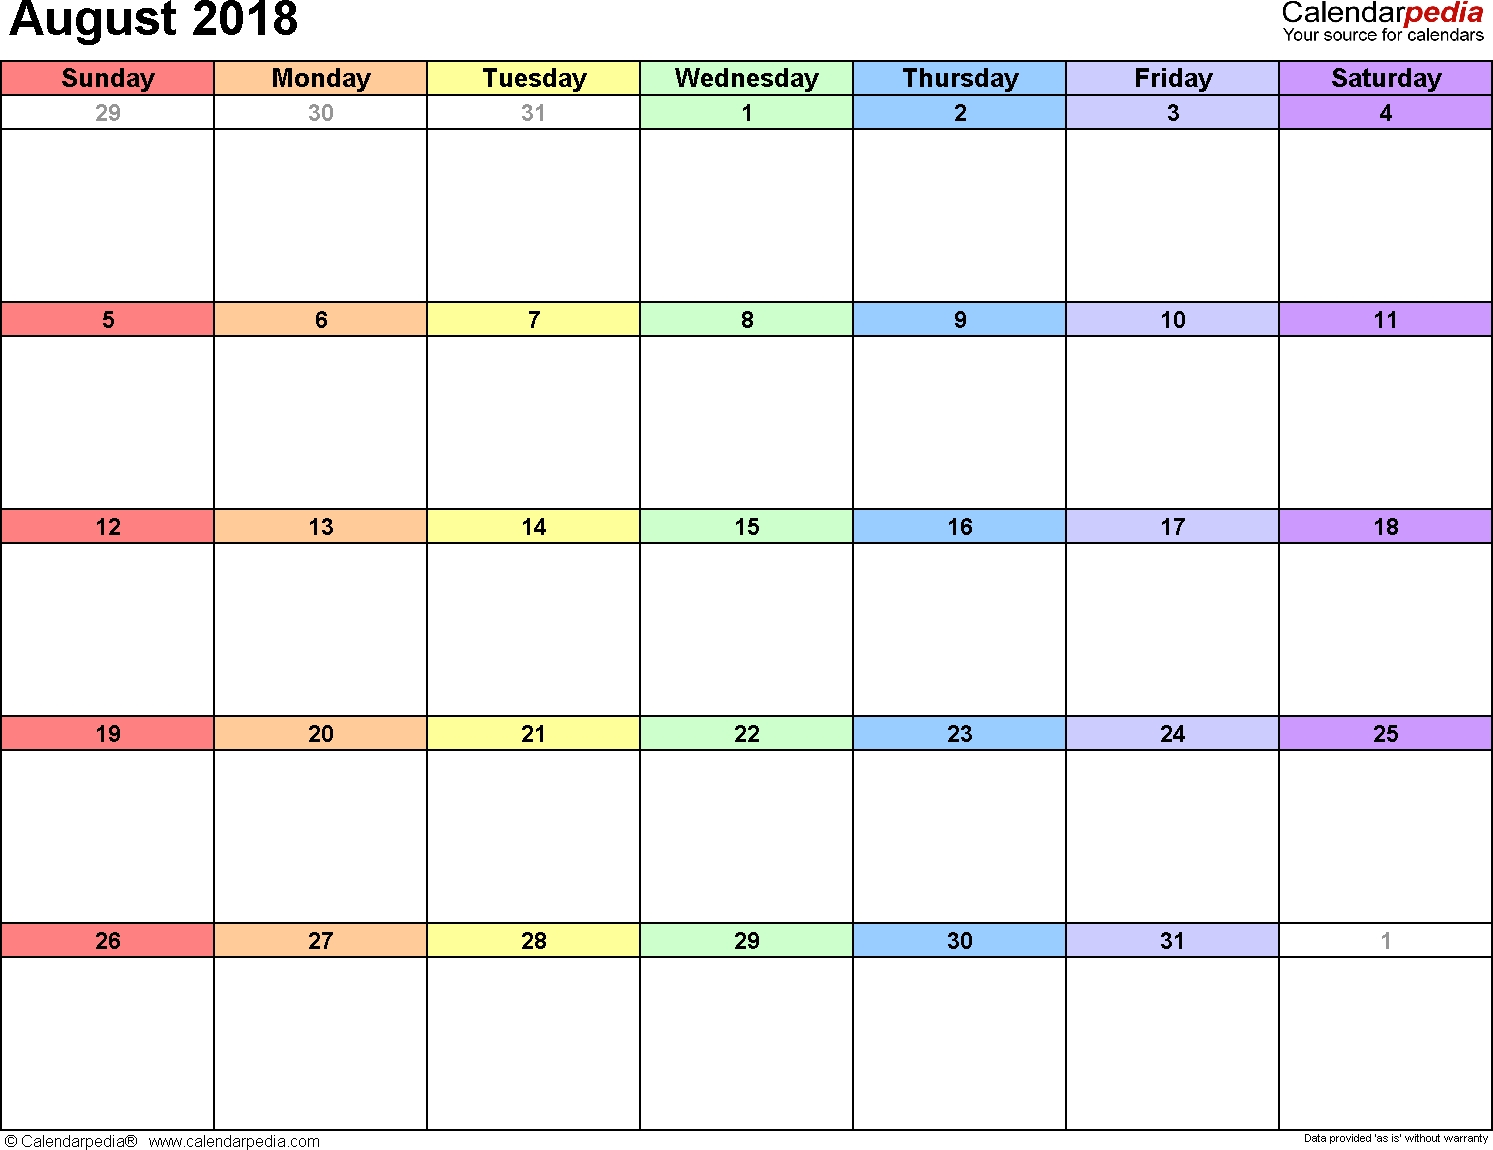 August 2018 Calendars For Word, Excel & Pdf throughout August Printable Images To Color